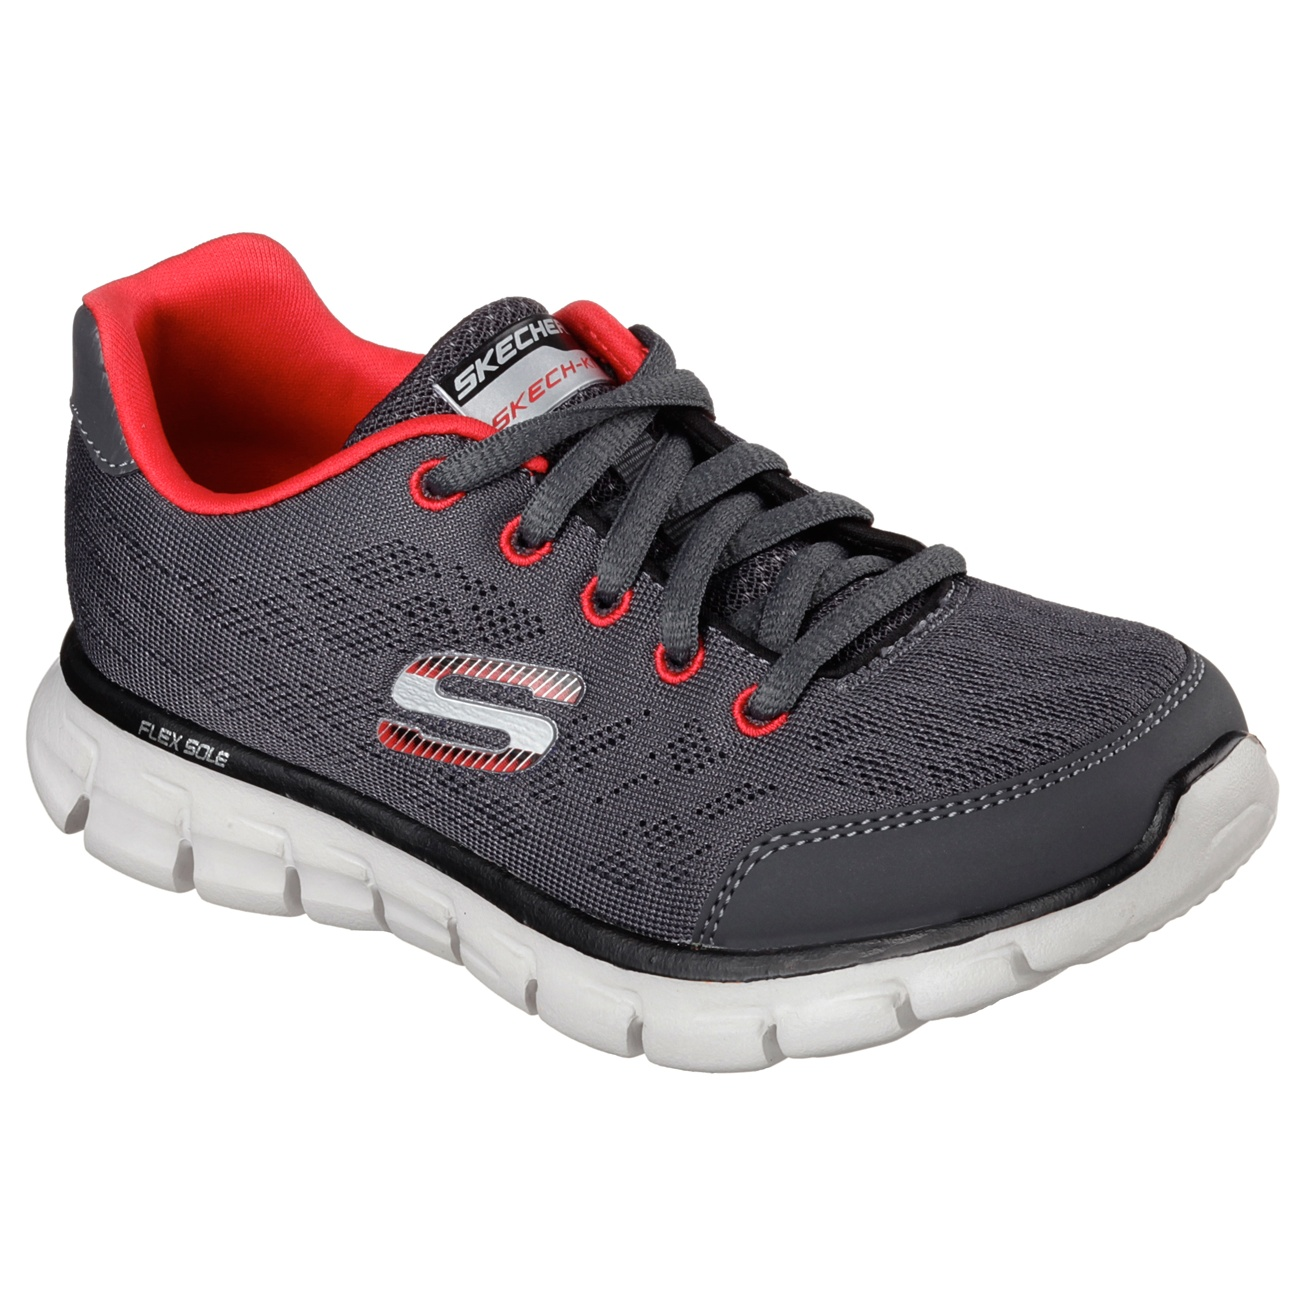 Skechers-Childrens-Boys-Synergy-Fine-Tune-Lace-Up-Trainers-FS3549